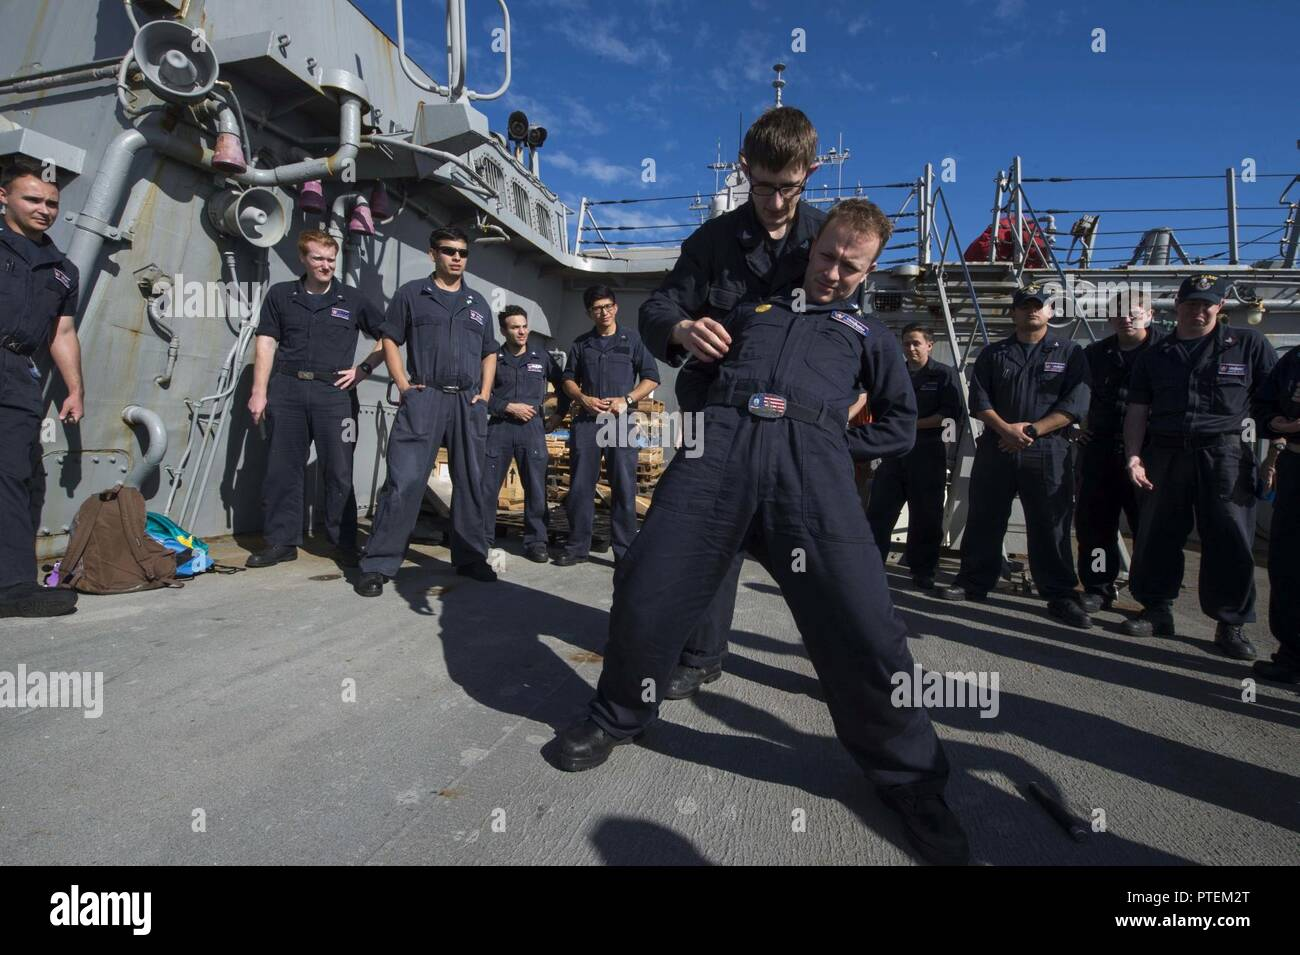 Fire Controlman 3rd Class Tyler Weathers, assigned to the forward-deployed Arleigh Burke-class guided-missile destroyer USS Barry (DDG 52), pats down Master-at-Arms 1st Class Nicholas Whitman as part of security reactionary forces training. - Stock Image